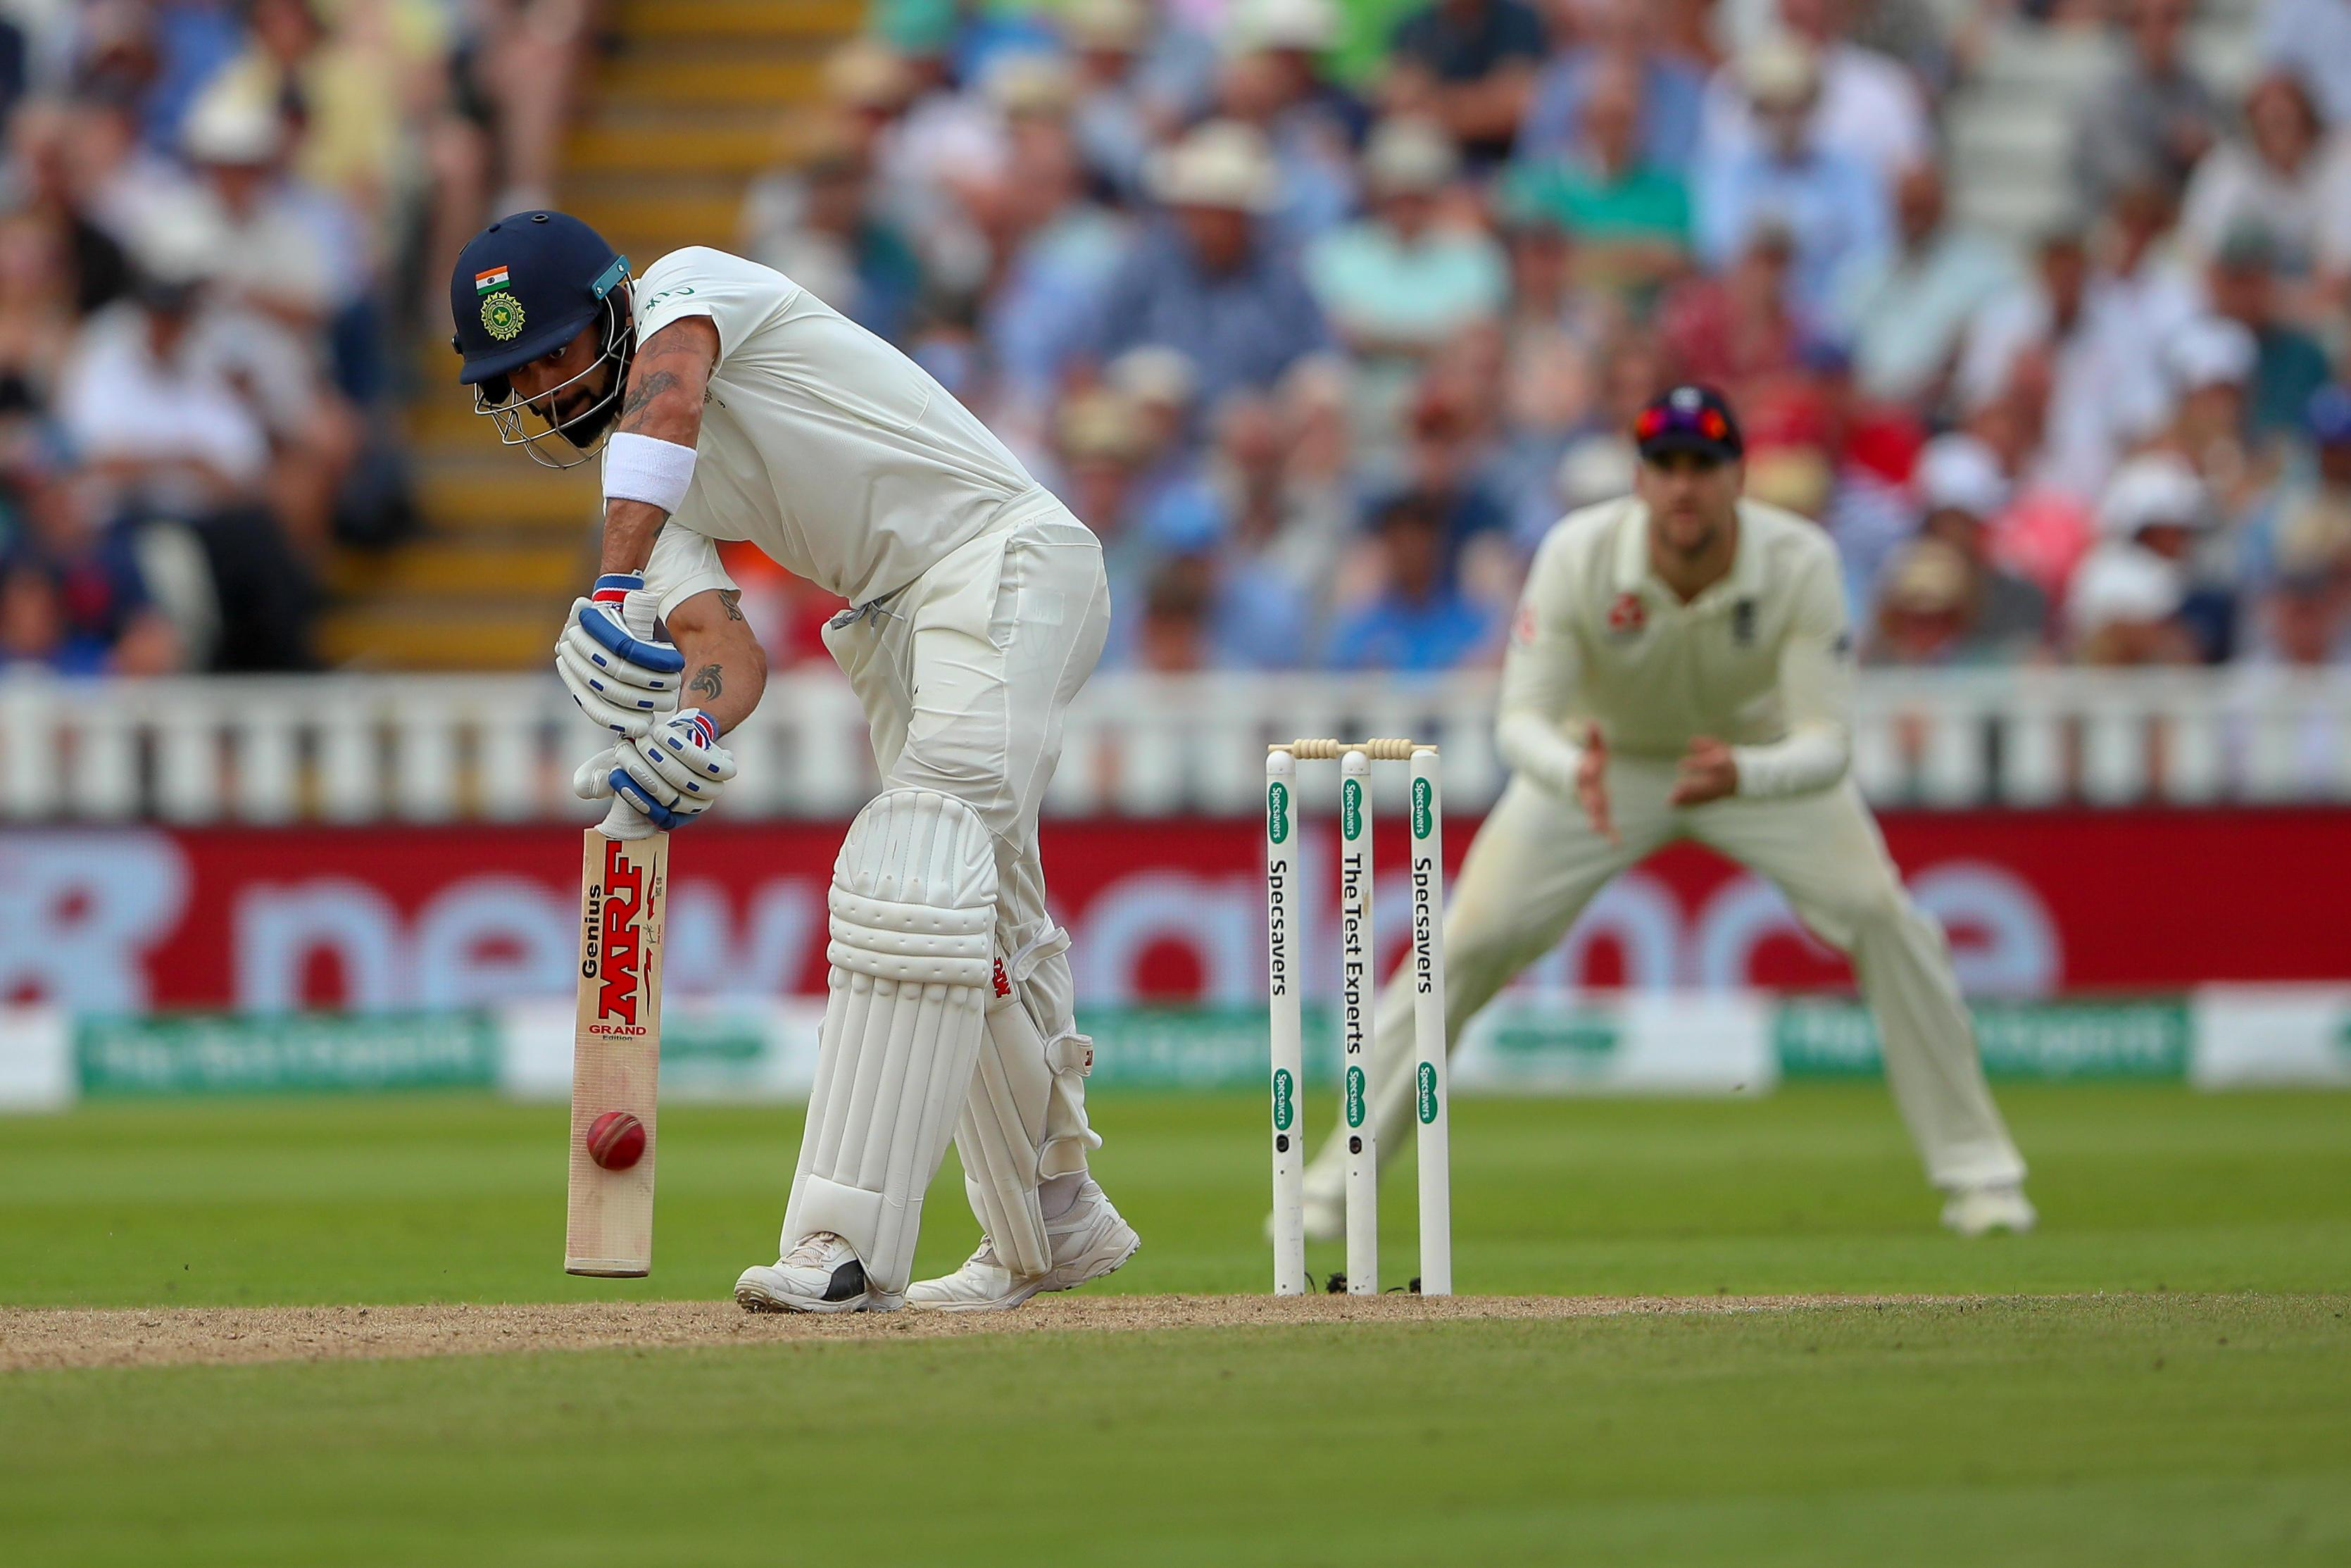 Kohli was eventually dismissed for 149 after staging a brilliantly defiant stand against the England attack